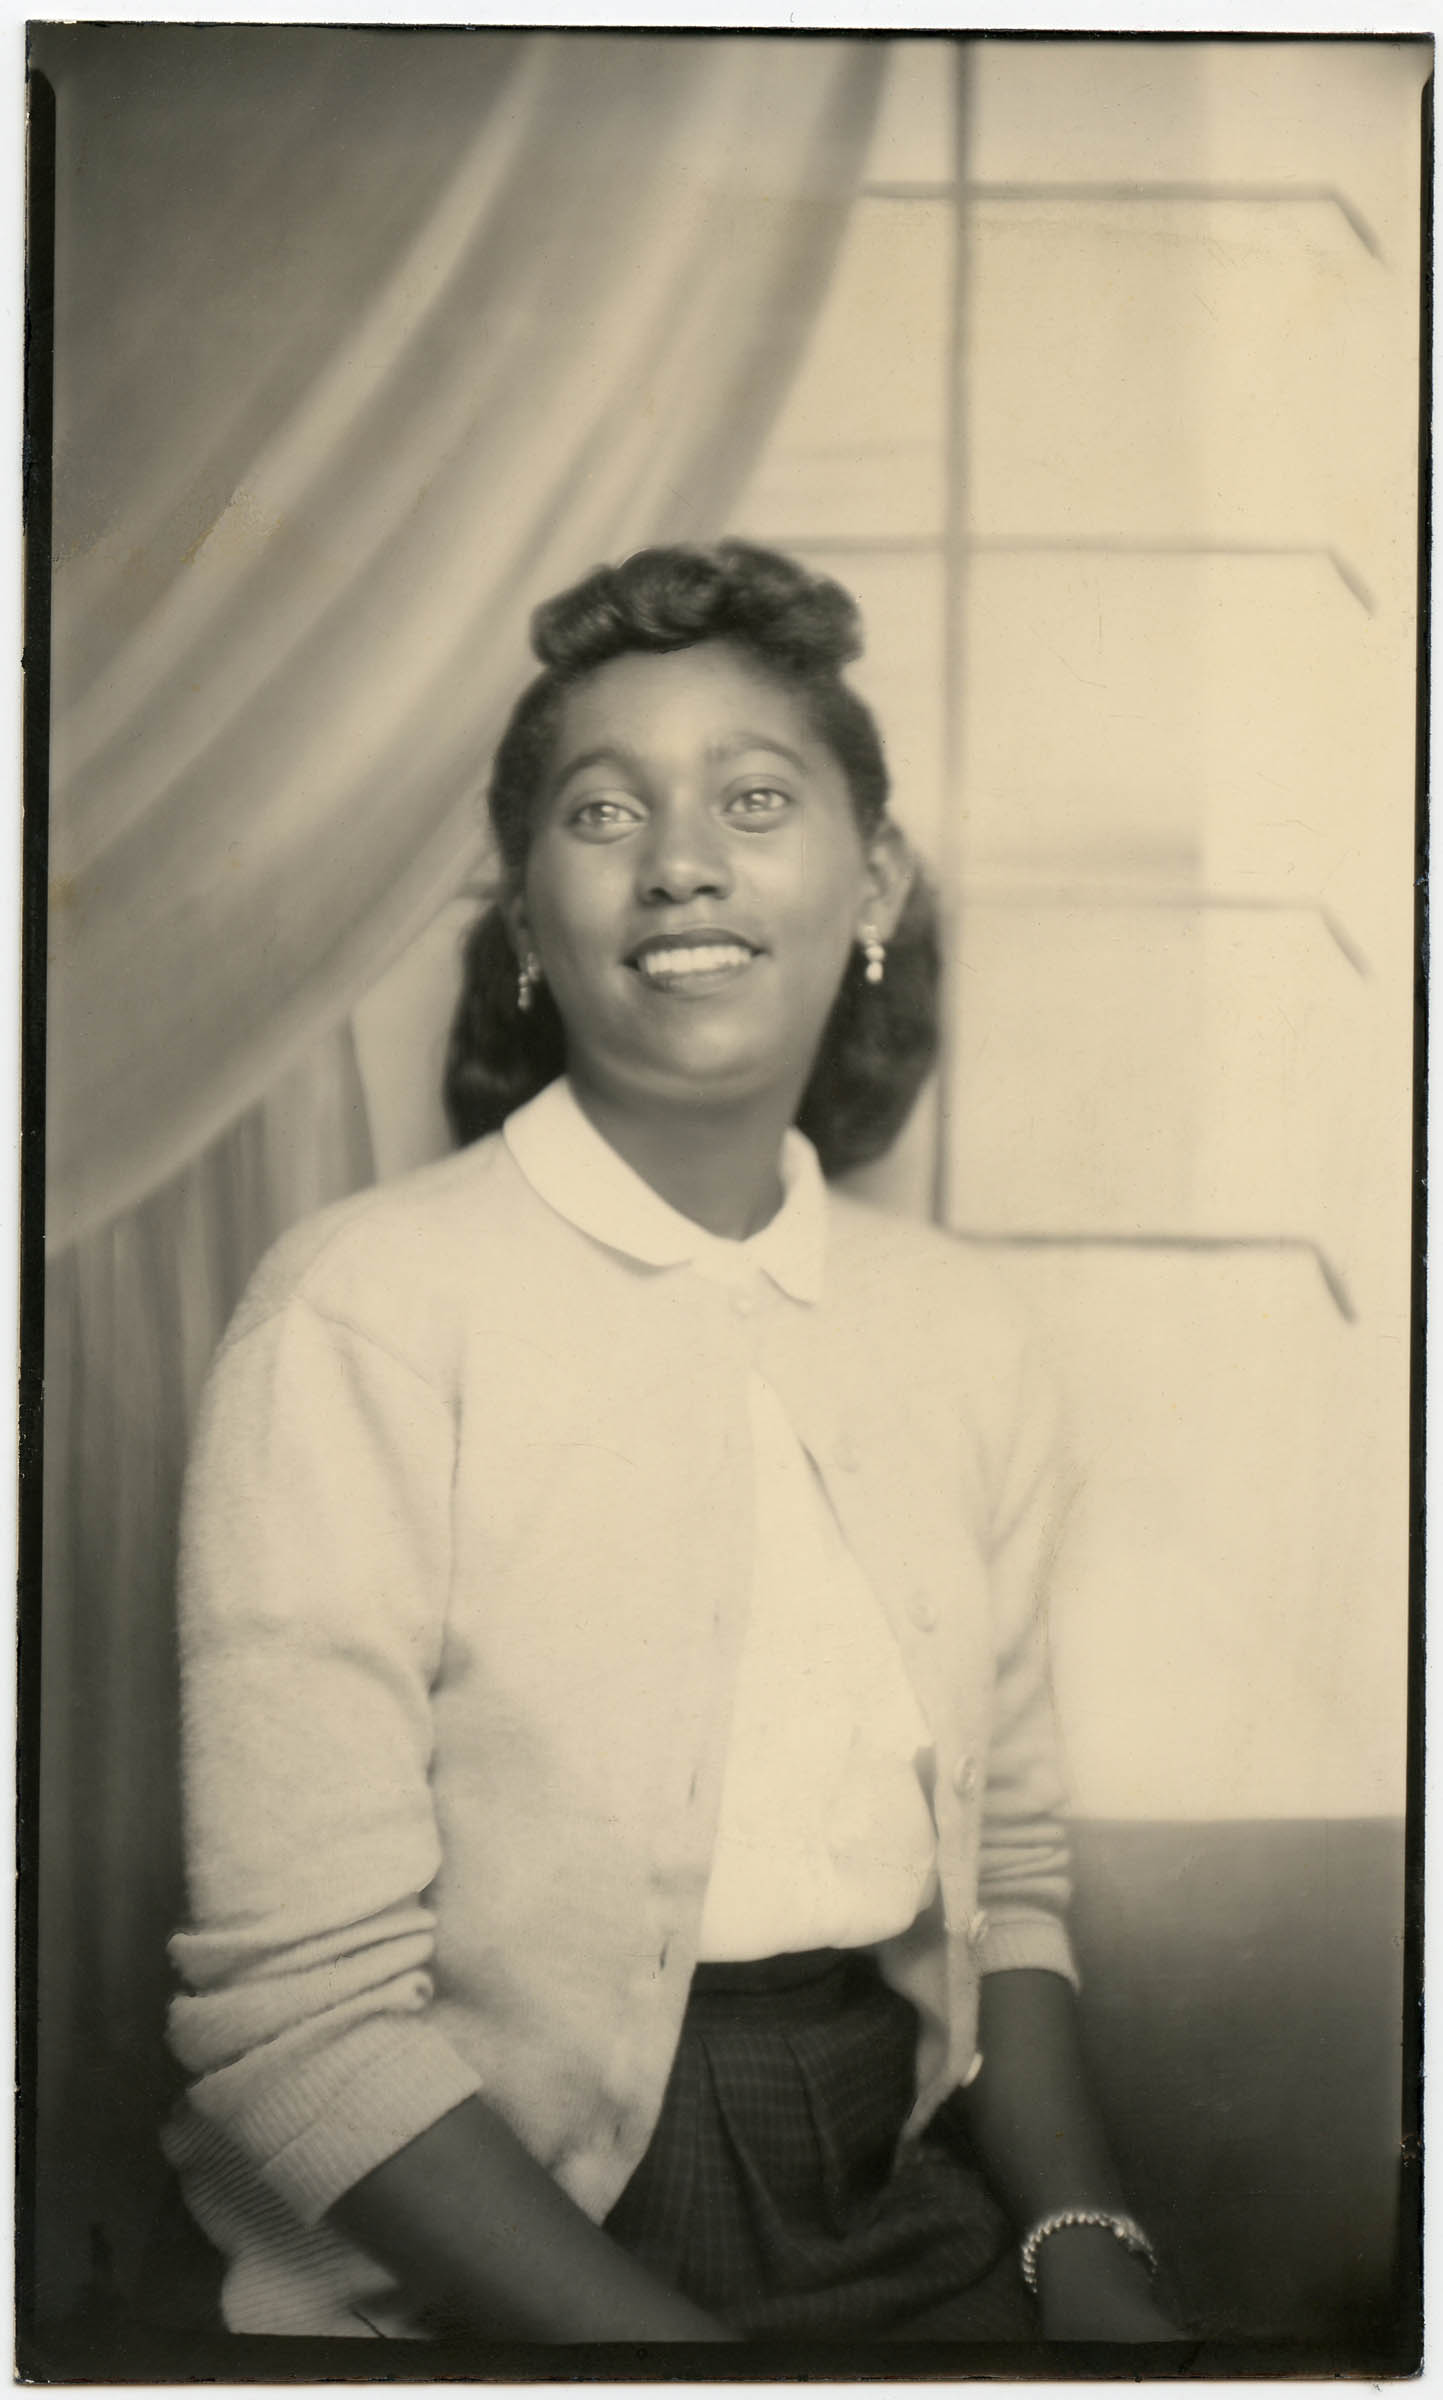 Portrait of a woman in a white sweater, around 1940-1950. Photographer unknown. Courtesy DIA.